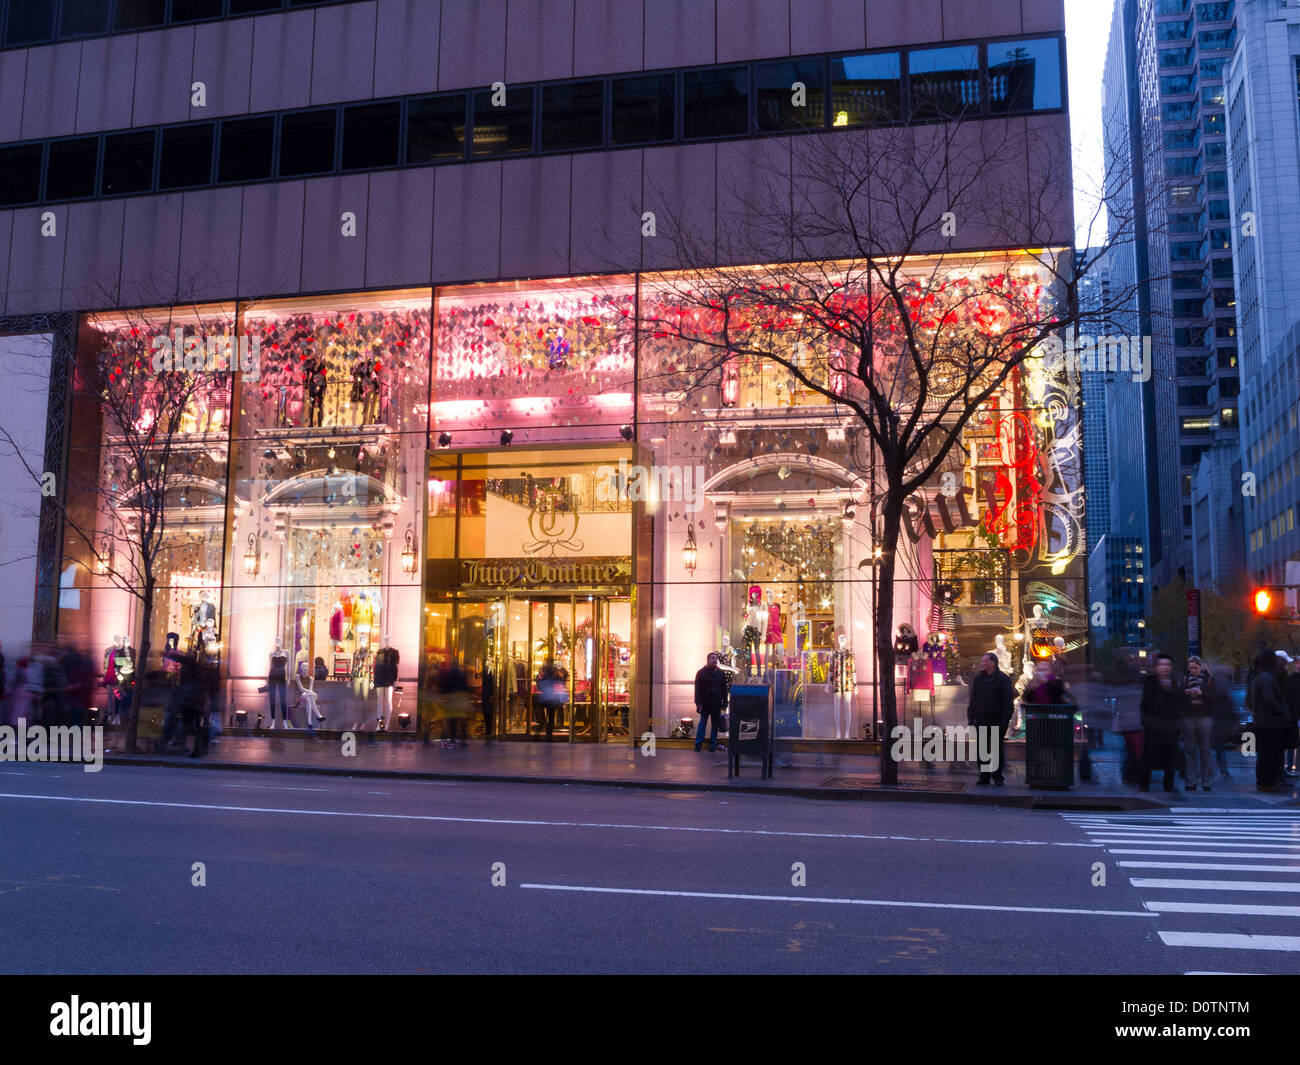 Juicy Couture Store at Dusk with Holiday Seasonal Decorations, Fifth Avenue, NYC - Stock Image